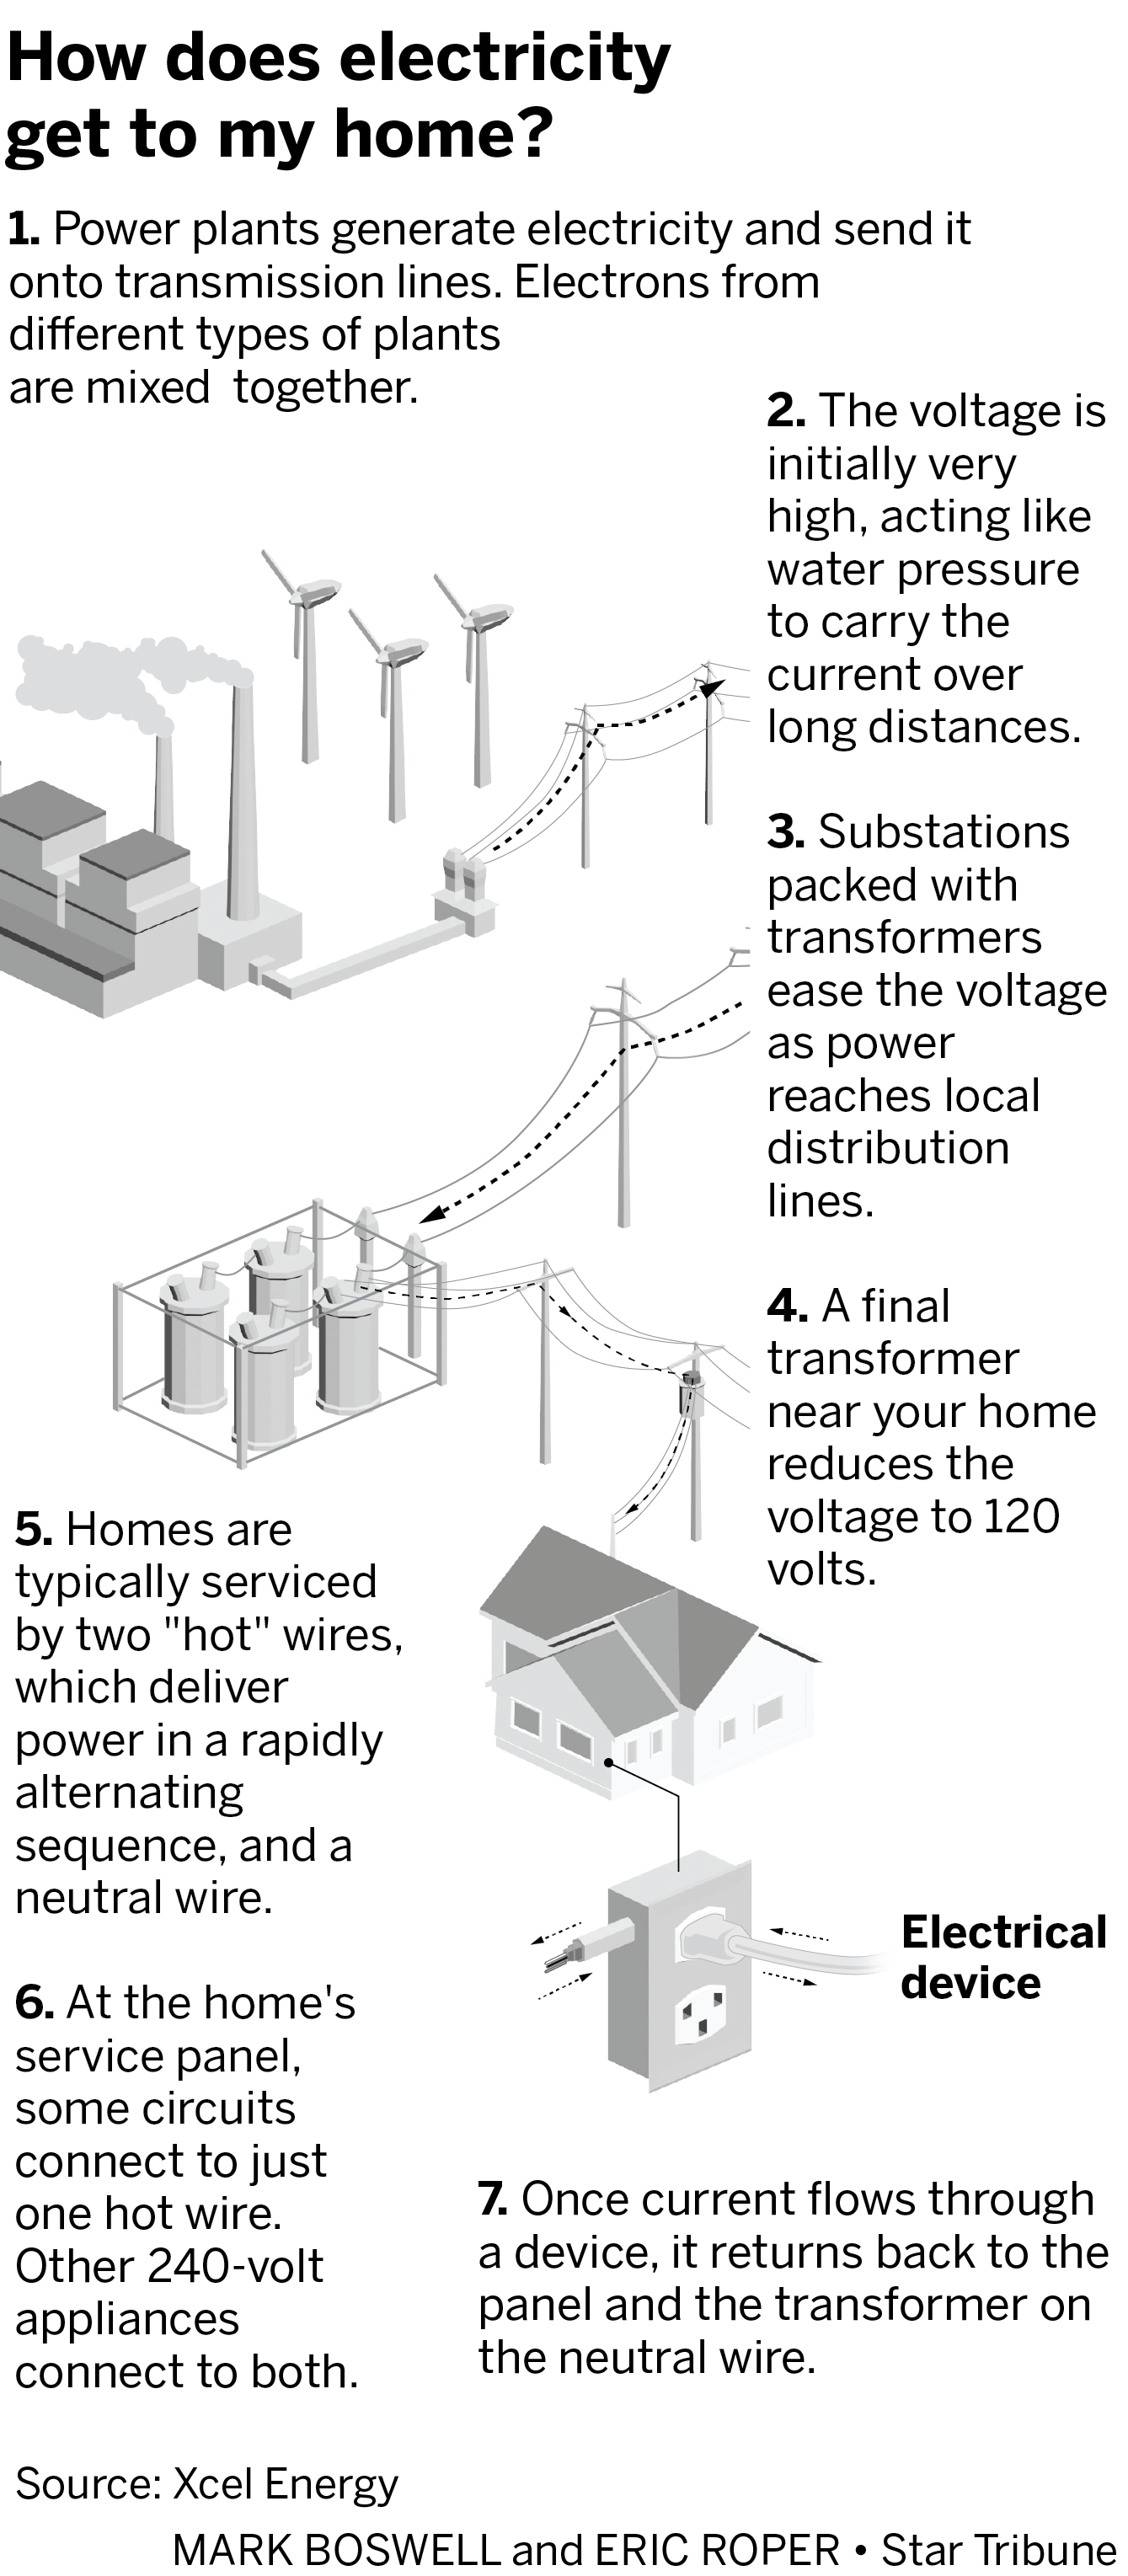 Where does Twin Cities electricity come from and how is it delivered to homes?